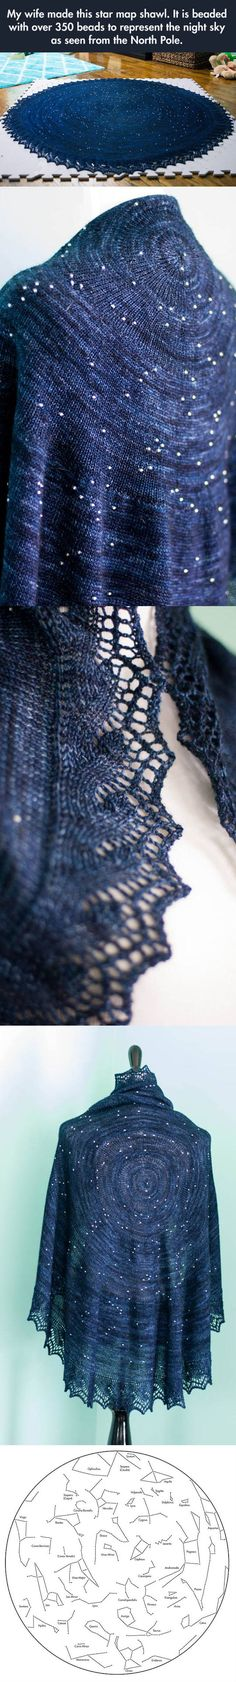 O.M.G.: Star map shawl!!!